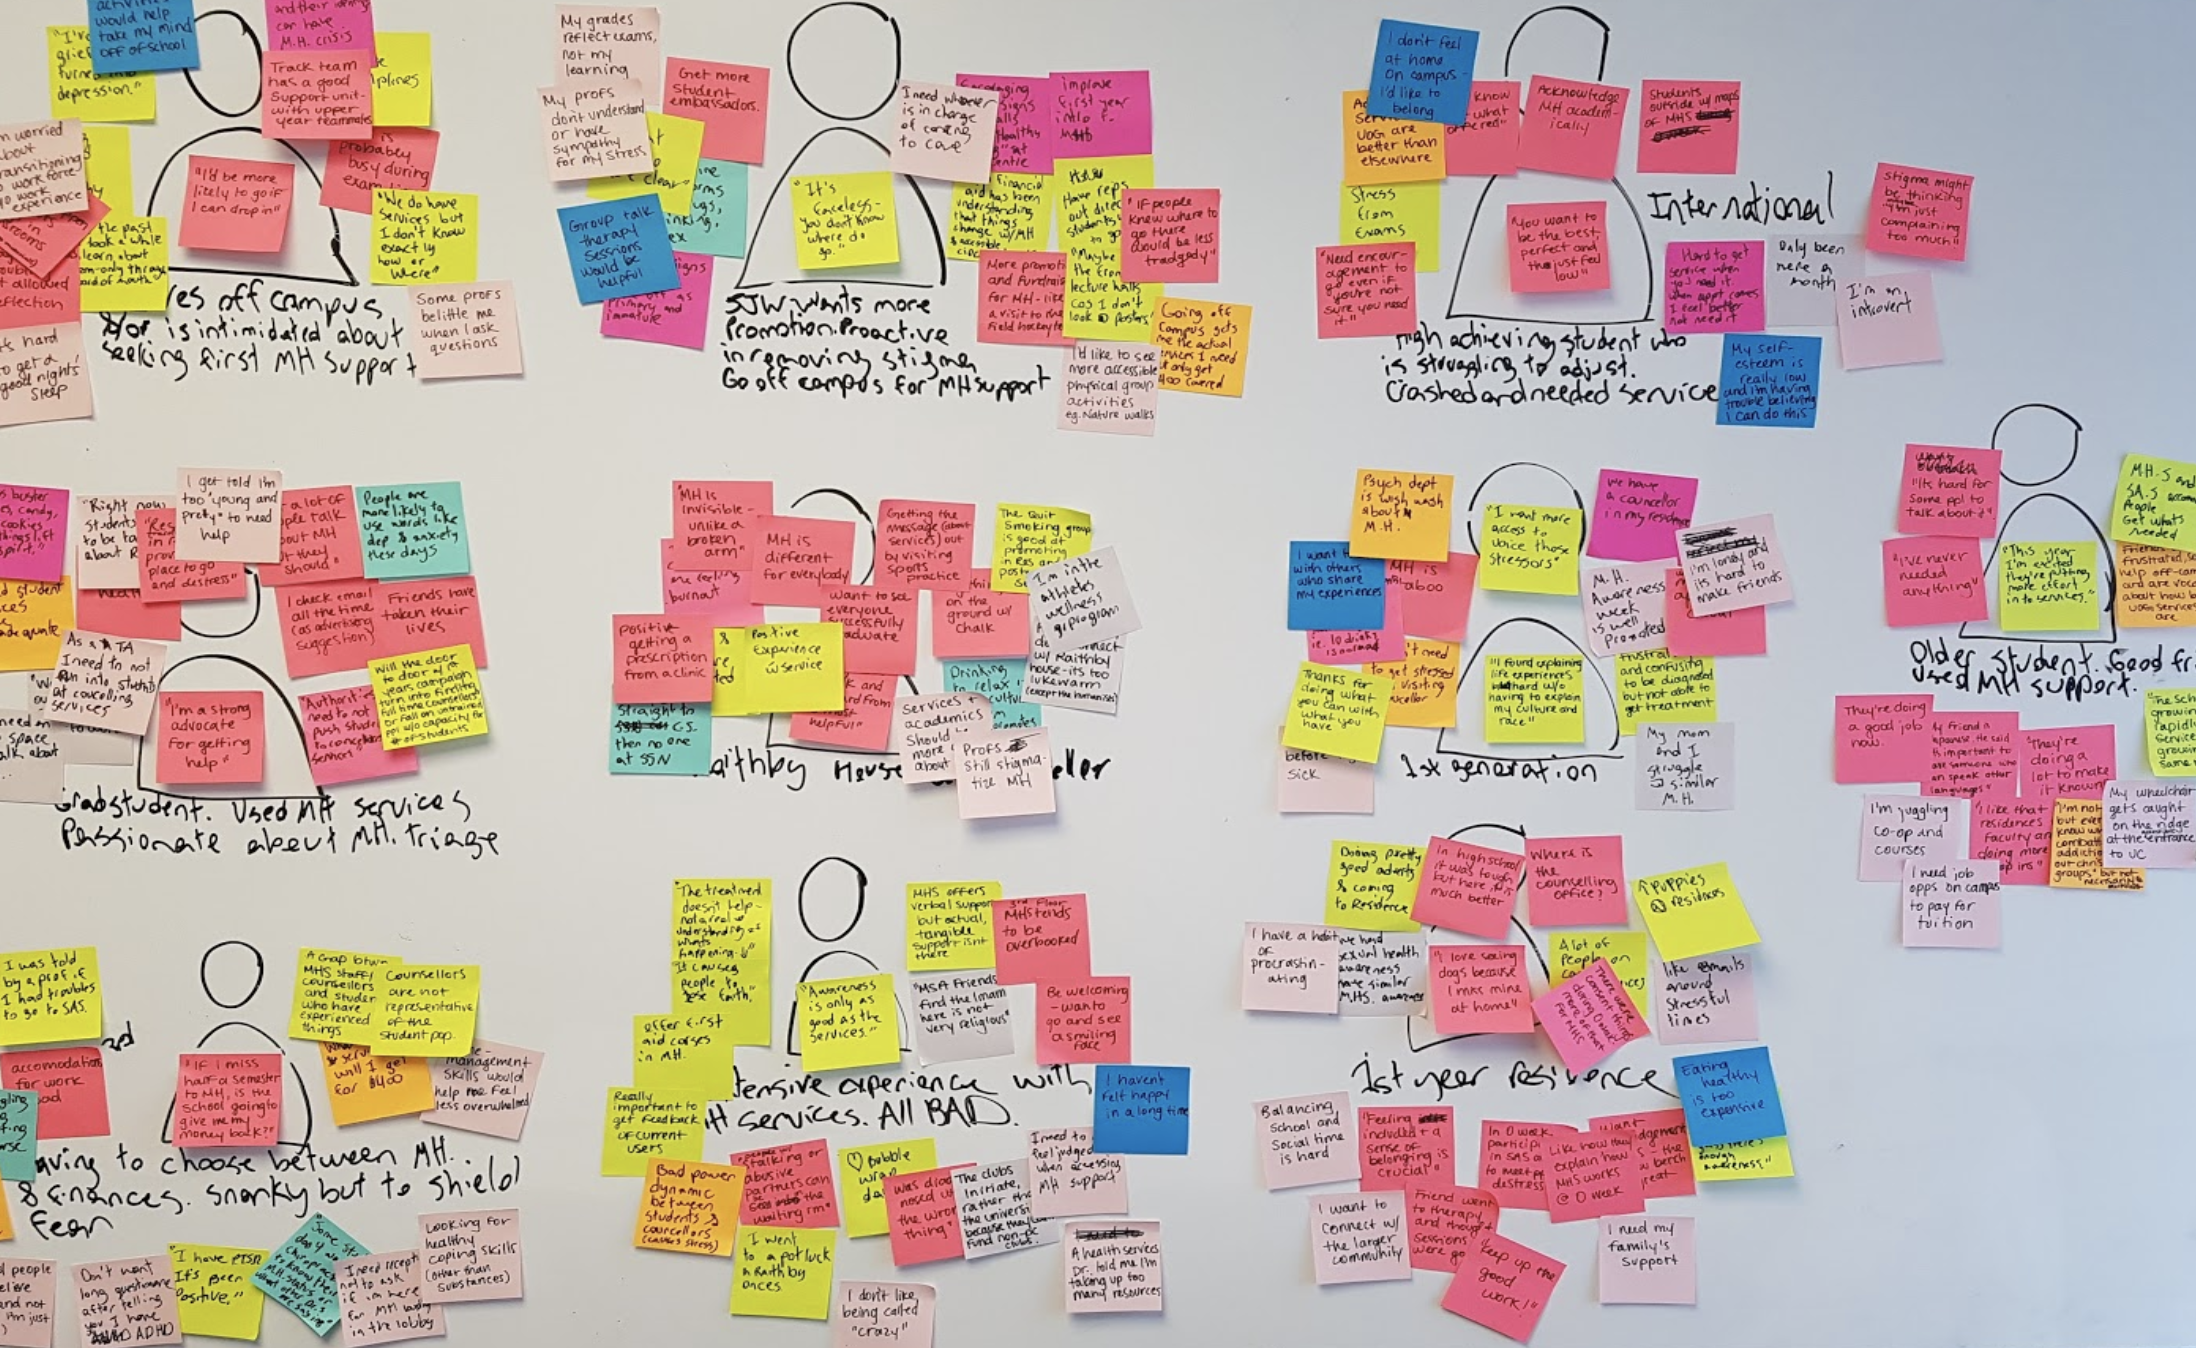 The process of creating Personas. Here, human heads are drawn and sticky notes are added from the research that has been analyzed